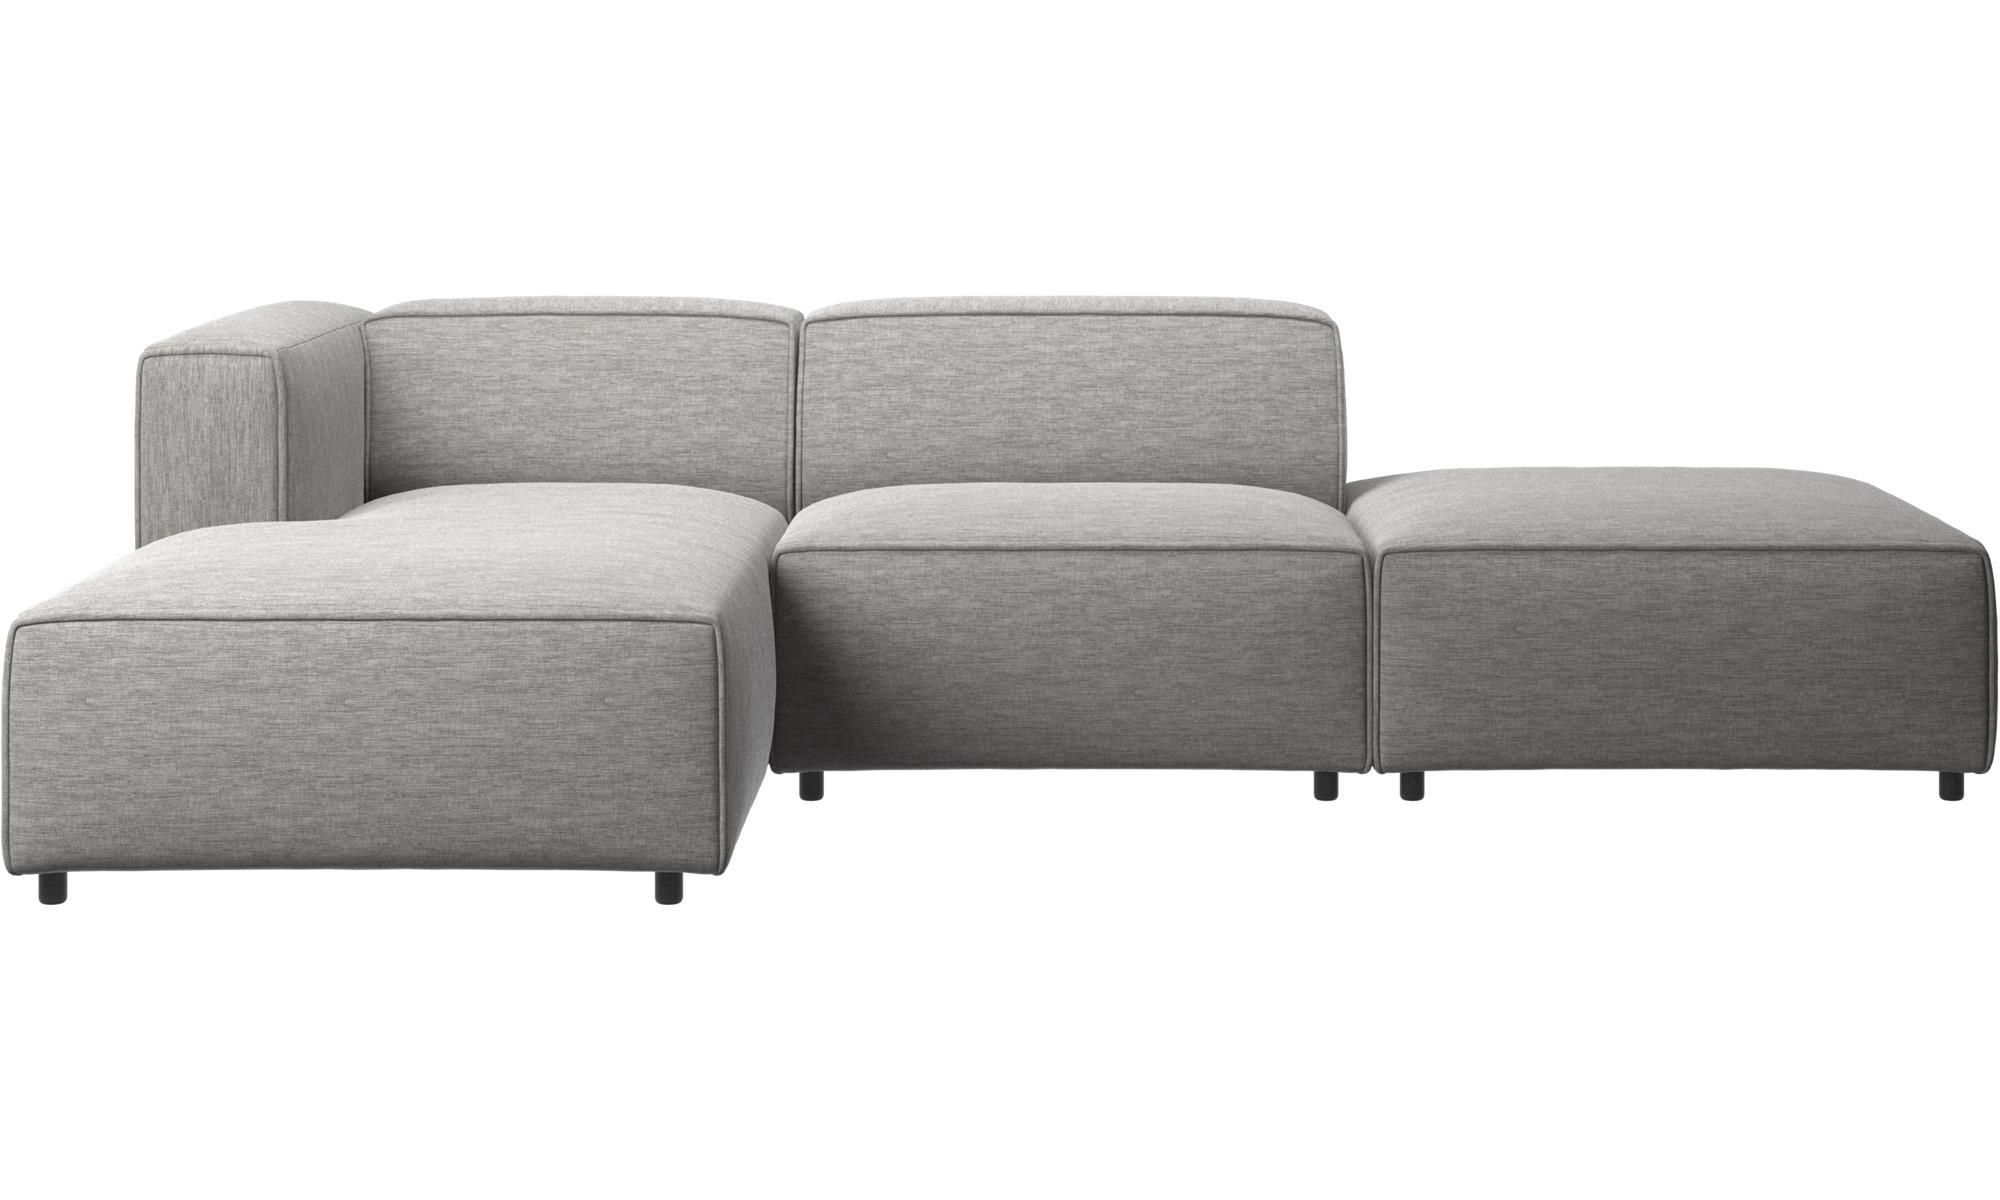 Carmo Sofa With Lounging And Resting Unit Lounge Sofa